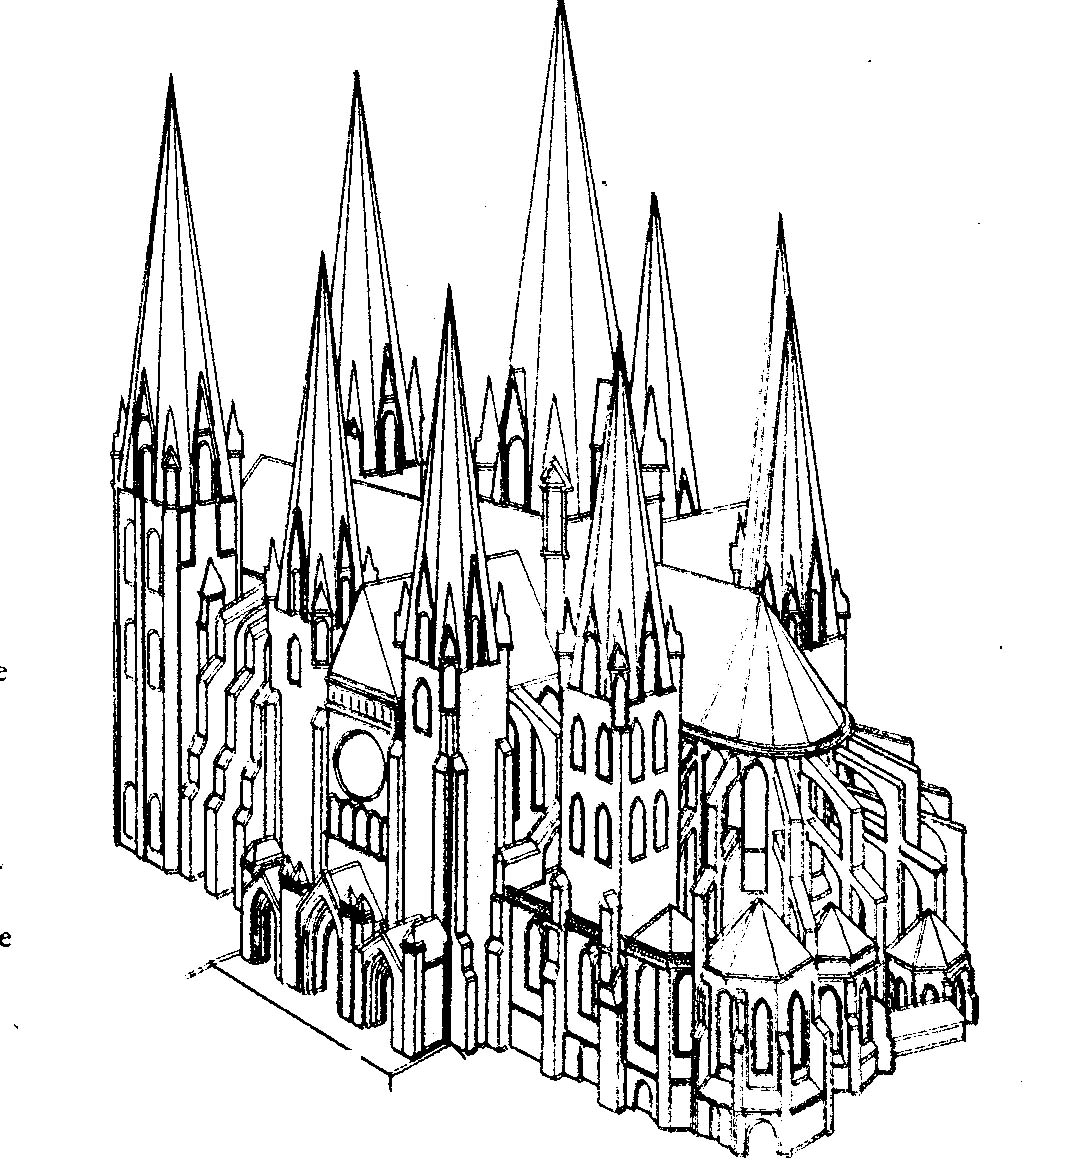 CATHEDRALS 1140-1300